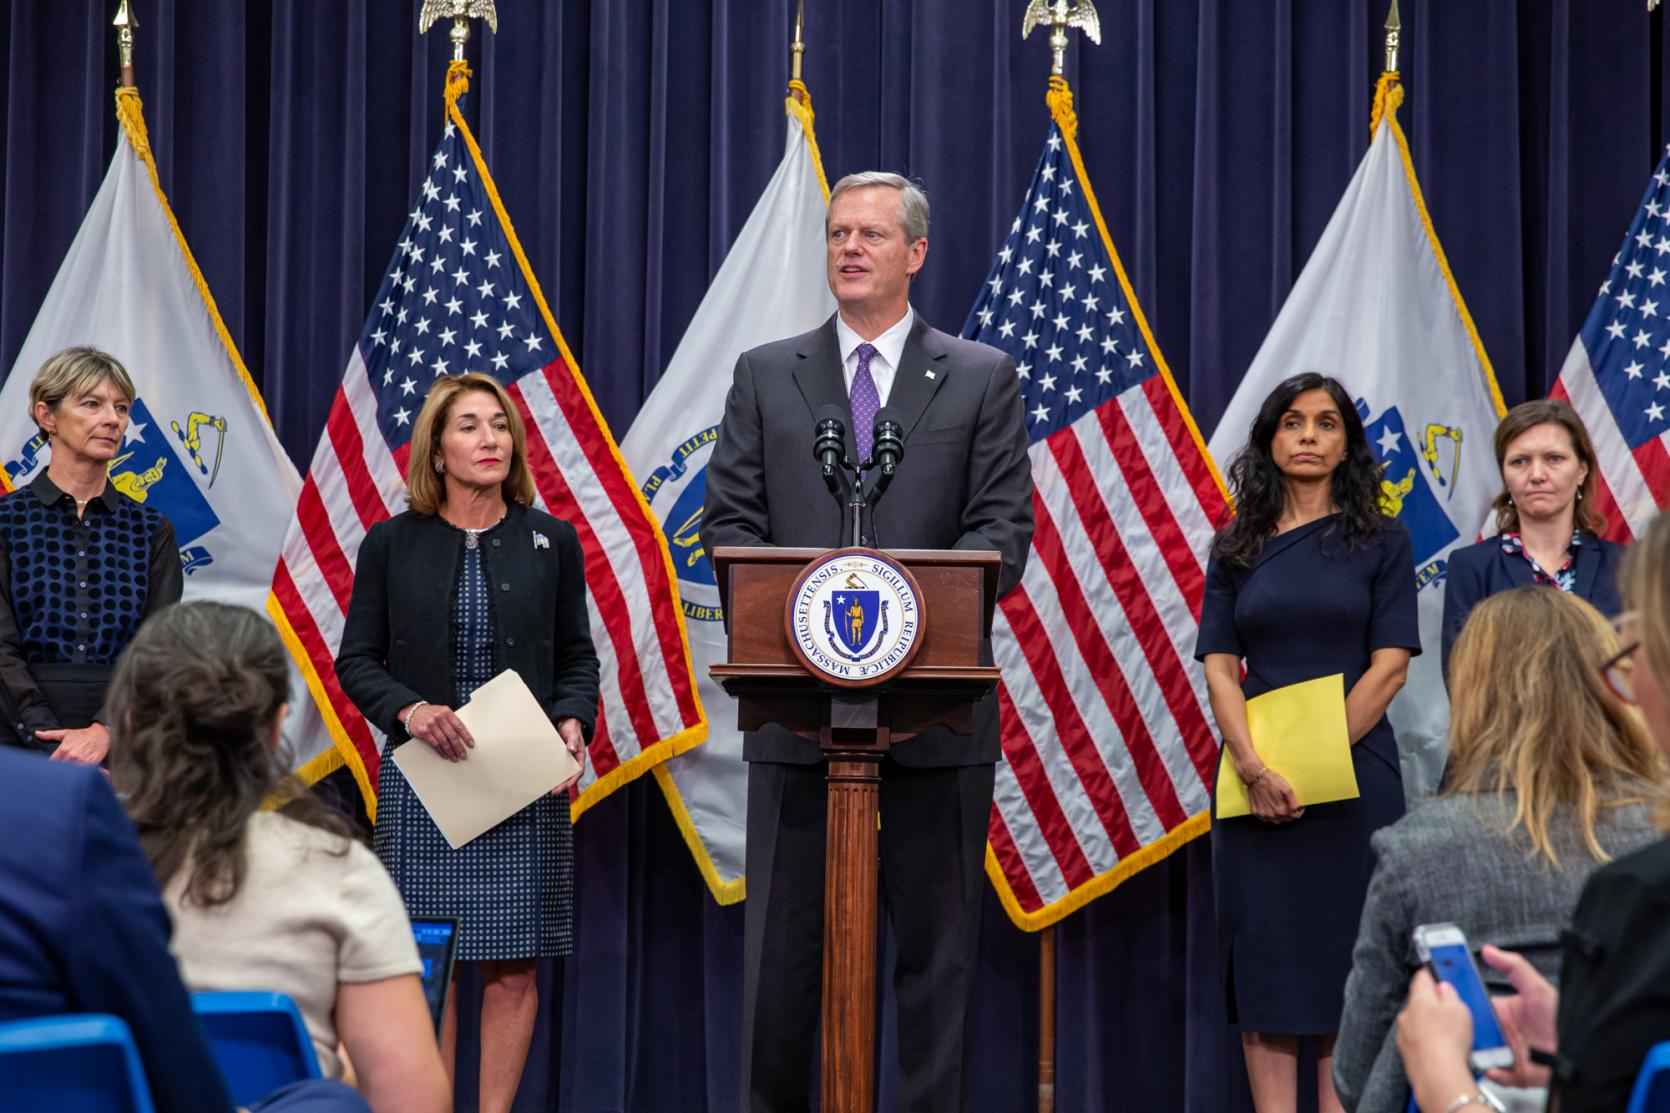 Governor Charlie Baker Declares Public Health Emergency, Announces Temporary Four-Month Ban on Sale of All Vape Products